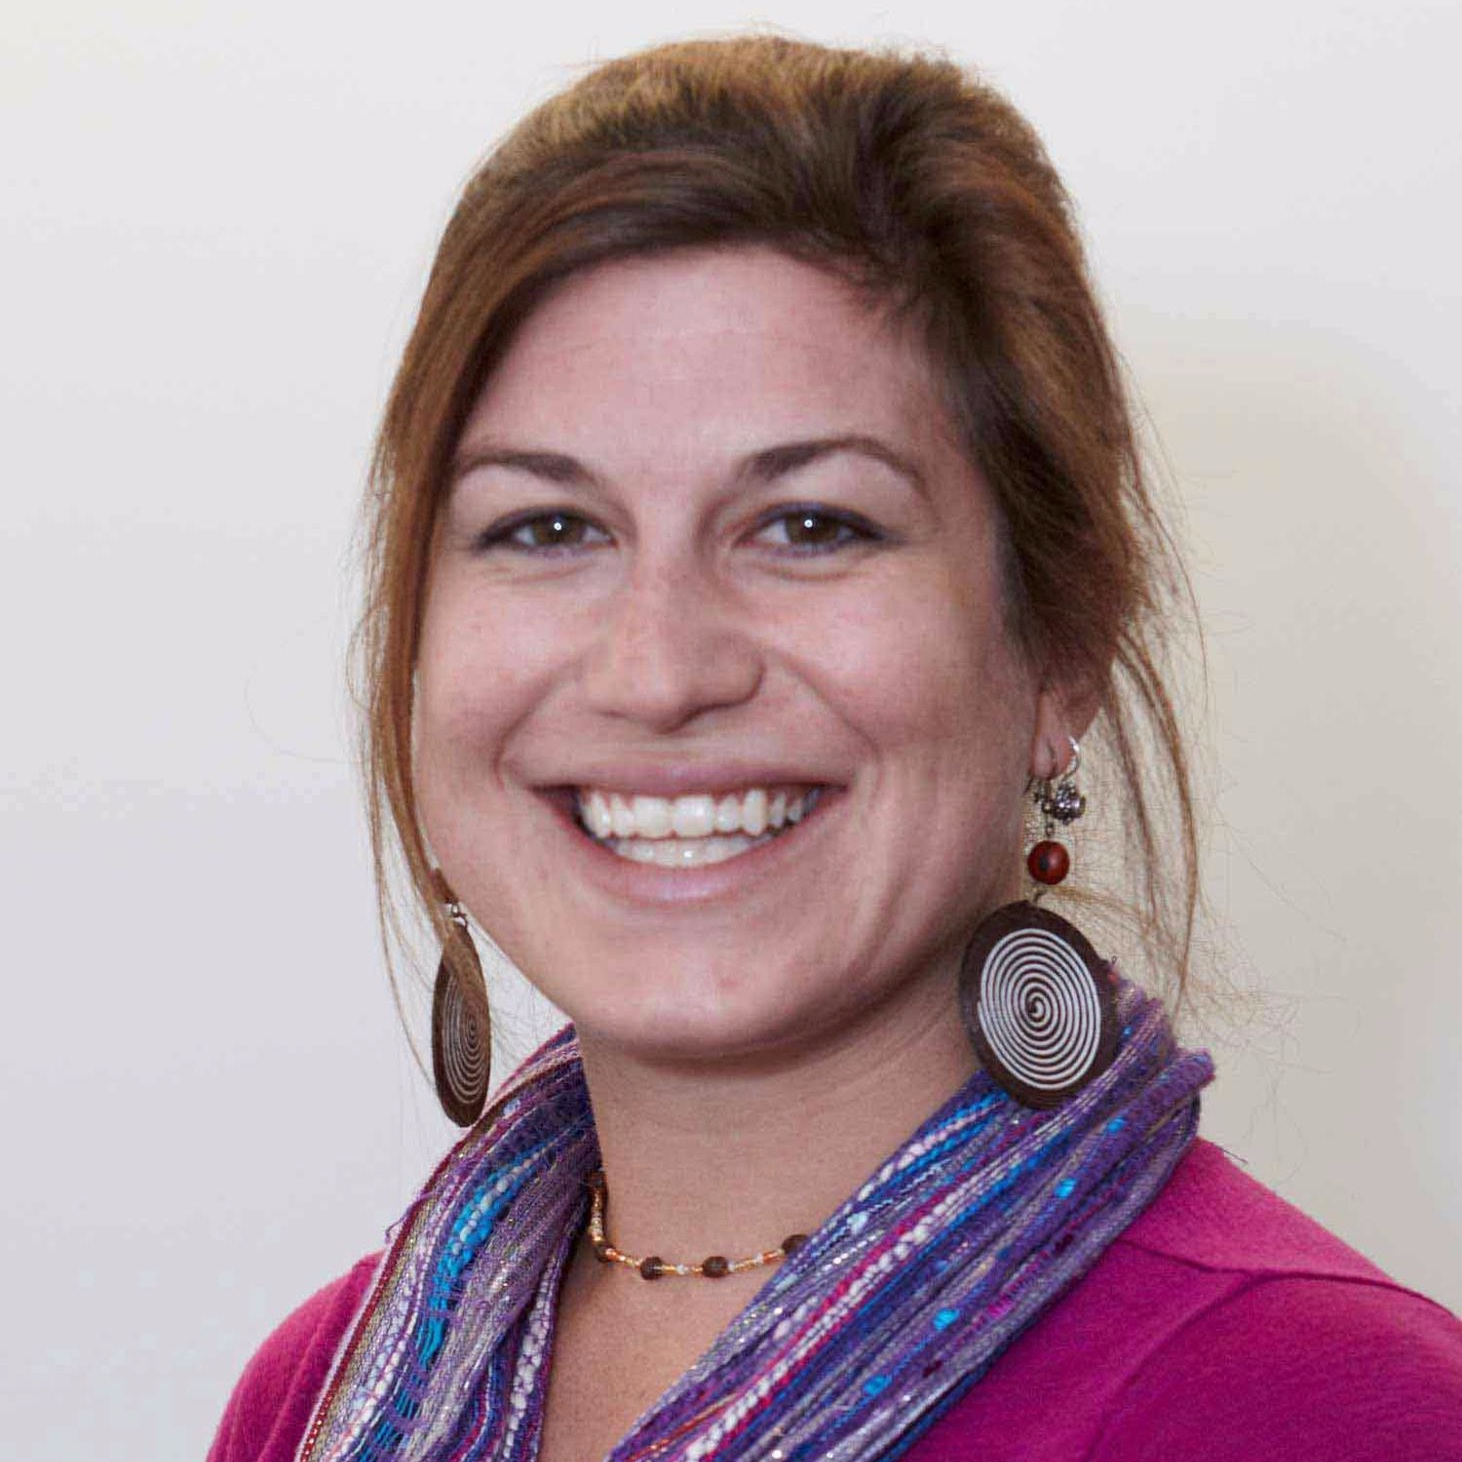 Stephanie Malin, PhD – Associate Professor, Sociology, Colorado State University